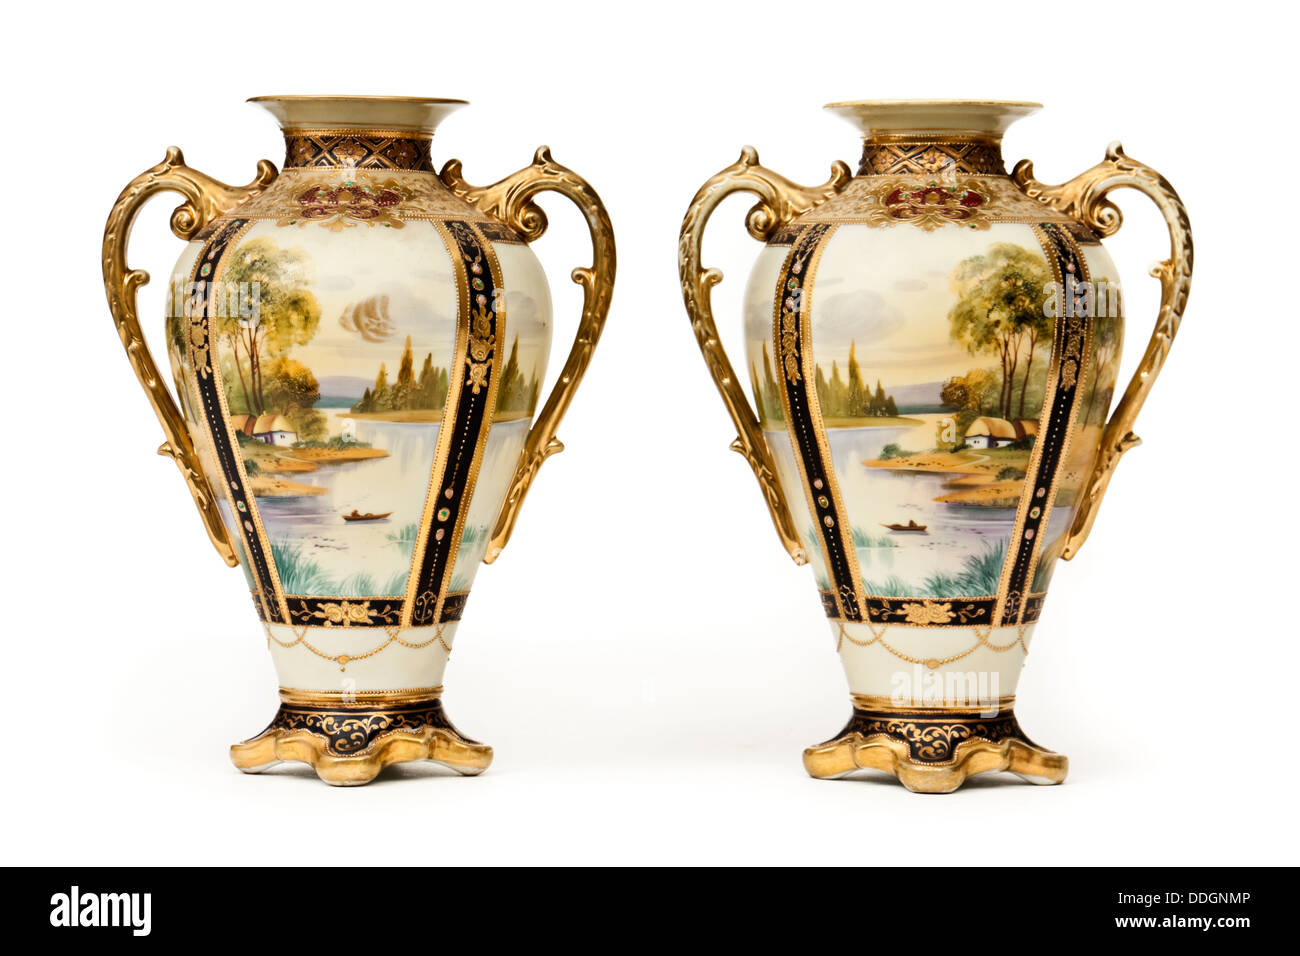 Pair of antique hand painted ornate vases by Noritake of Japan - Stock Image